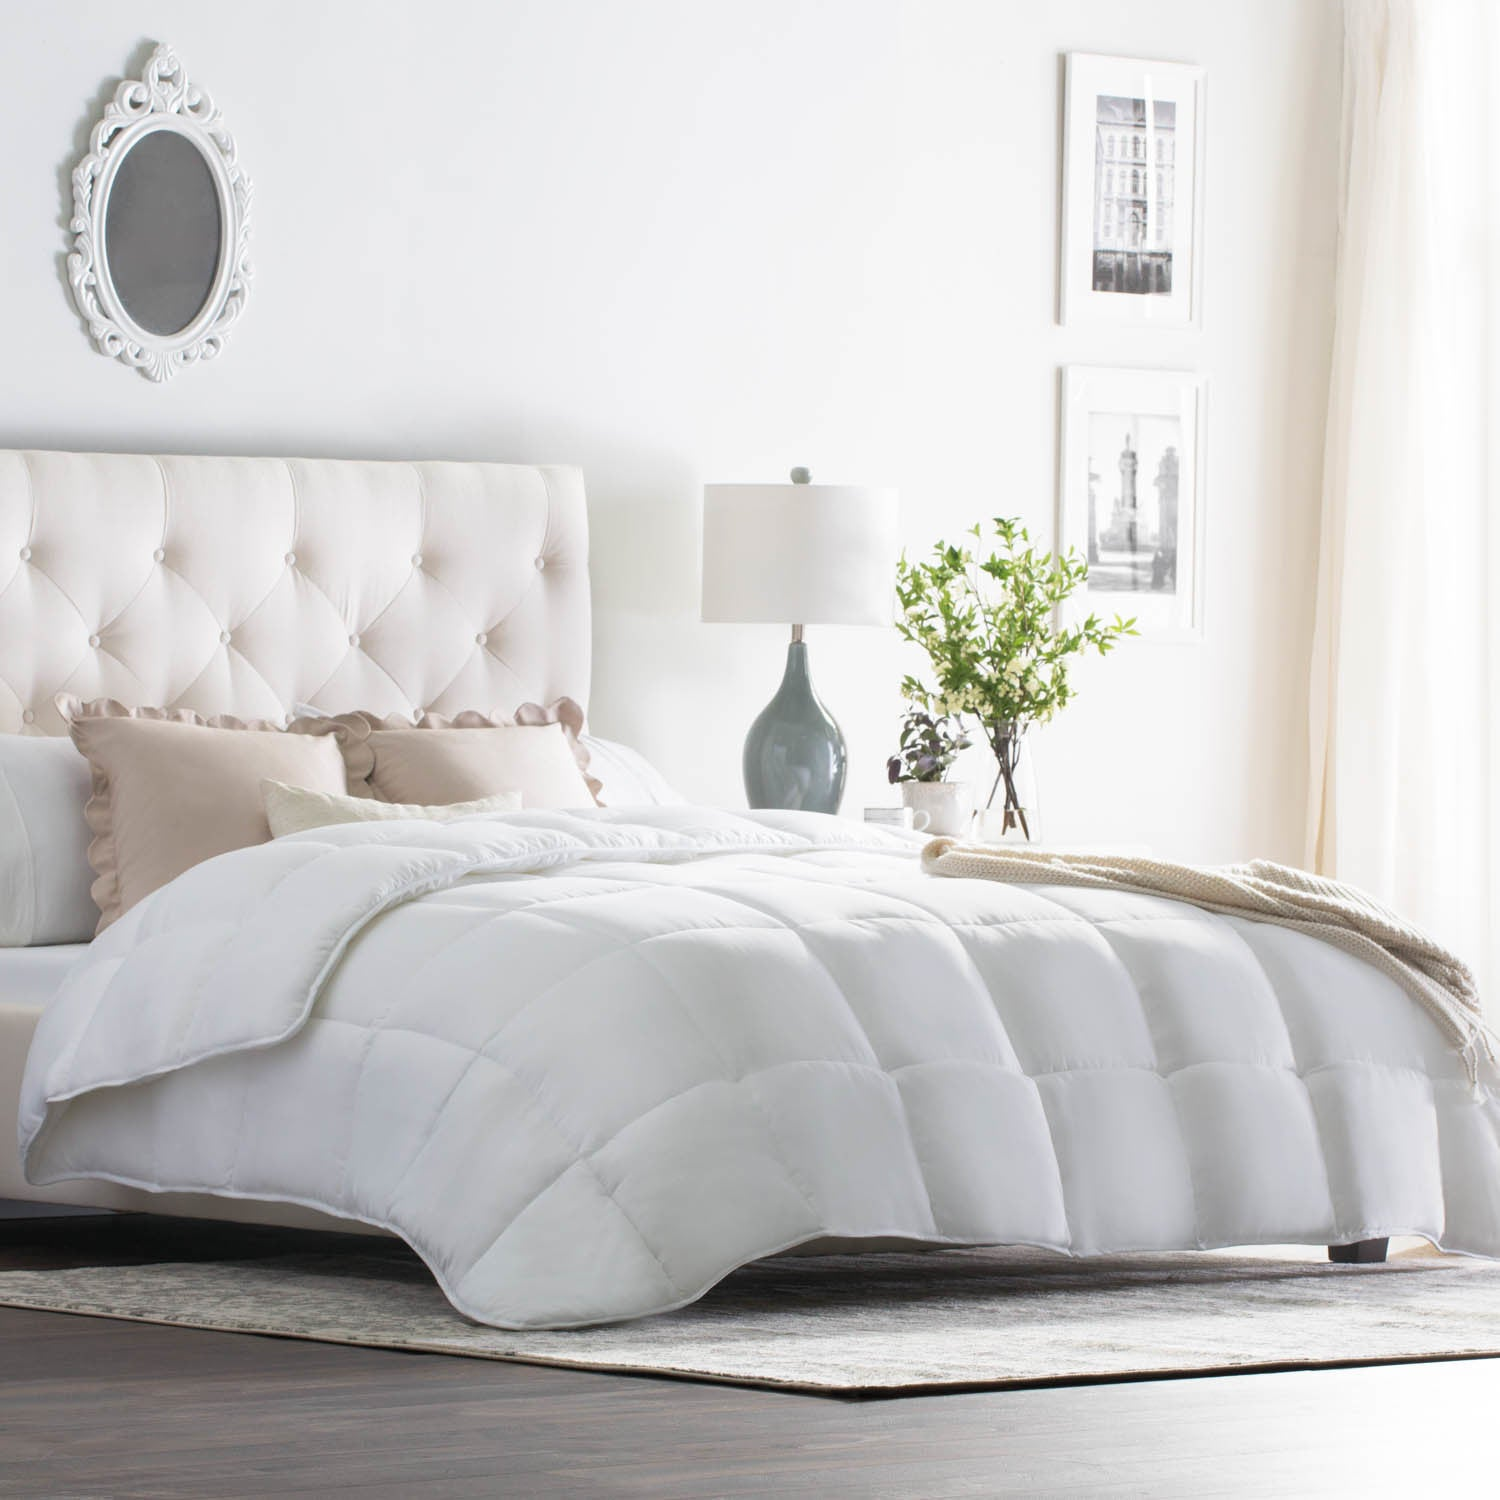 Weekender Quilted Down Alternative Hotel Style Comforter On Free Shipping Orders Over 45 16917215